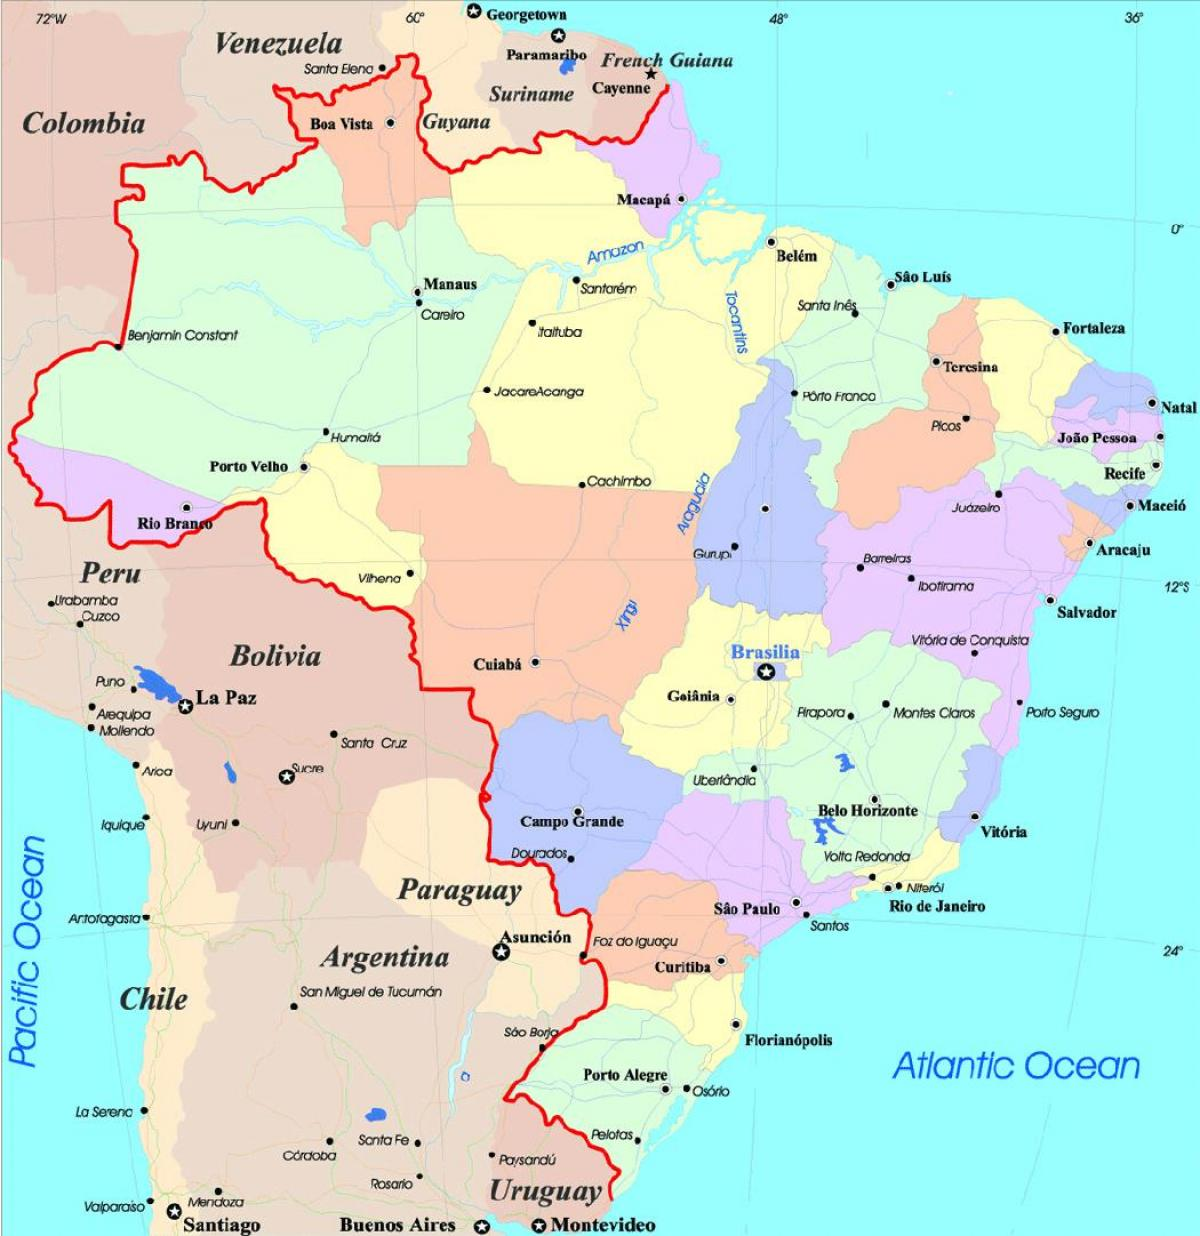 Brazil Map With Cities Map Of Cities In Brazil South America - Aracaju map